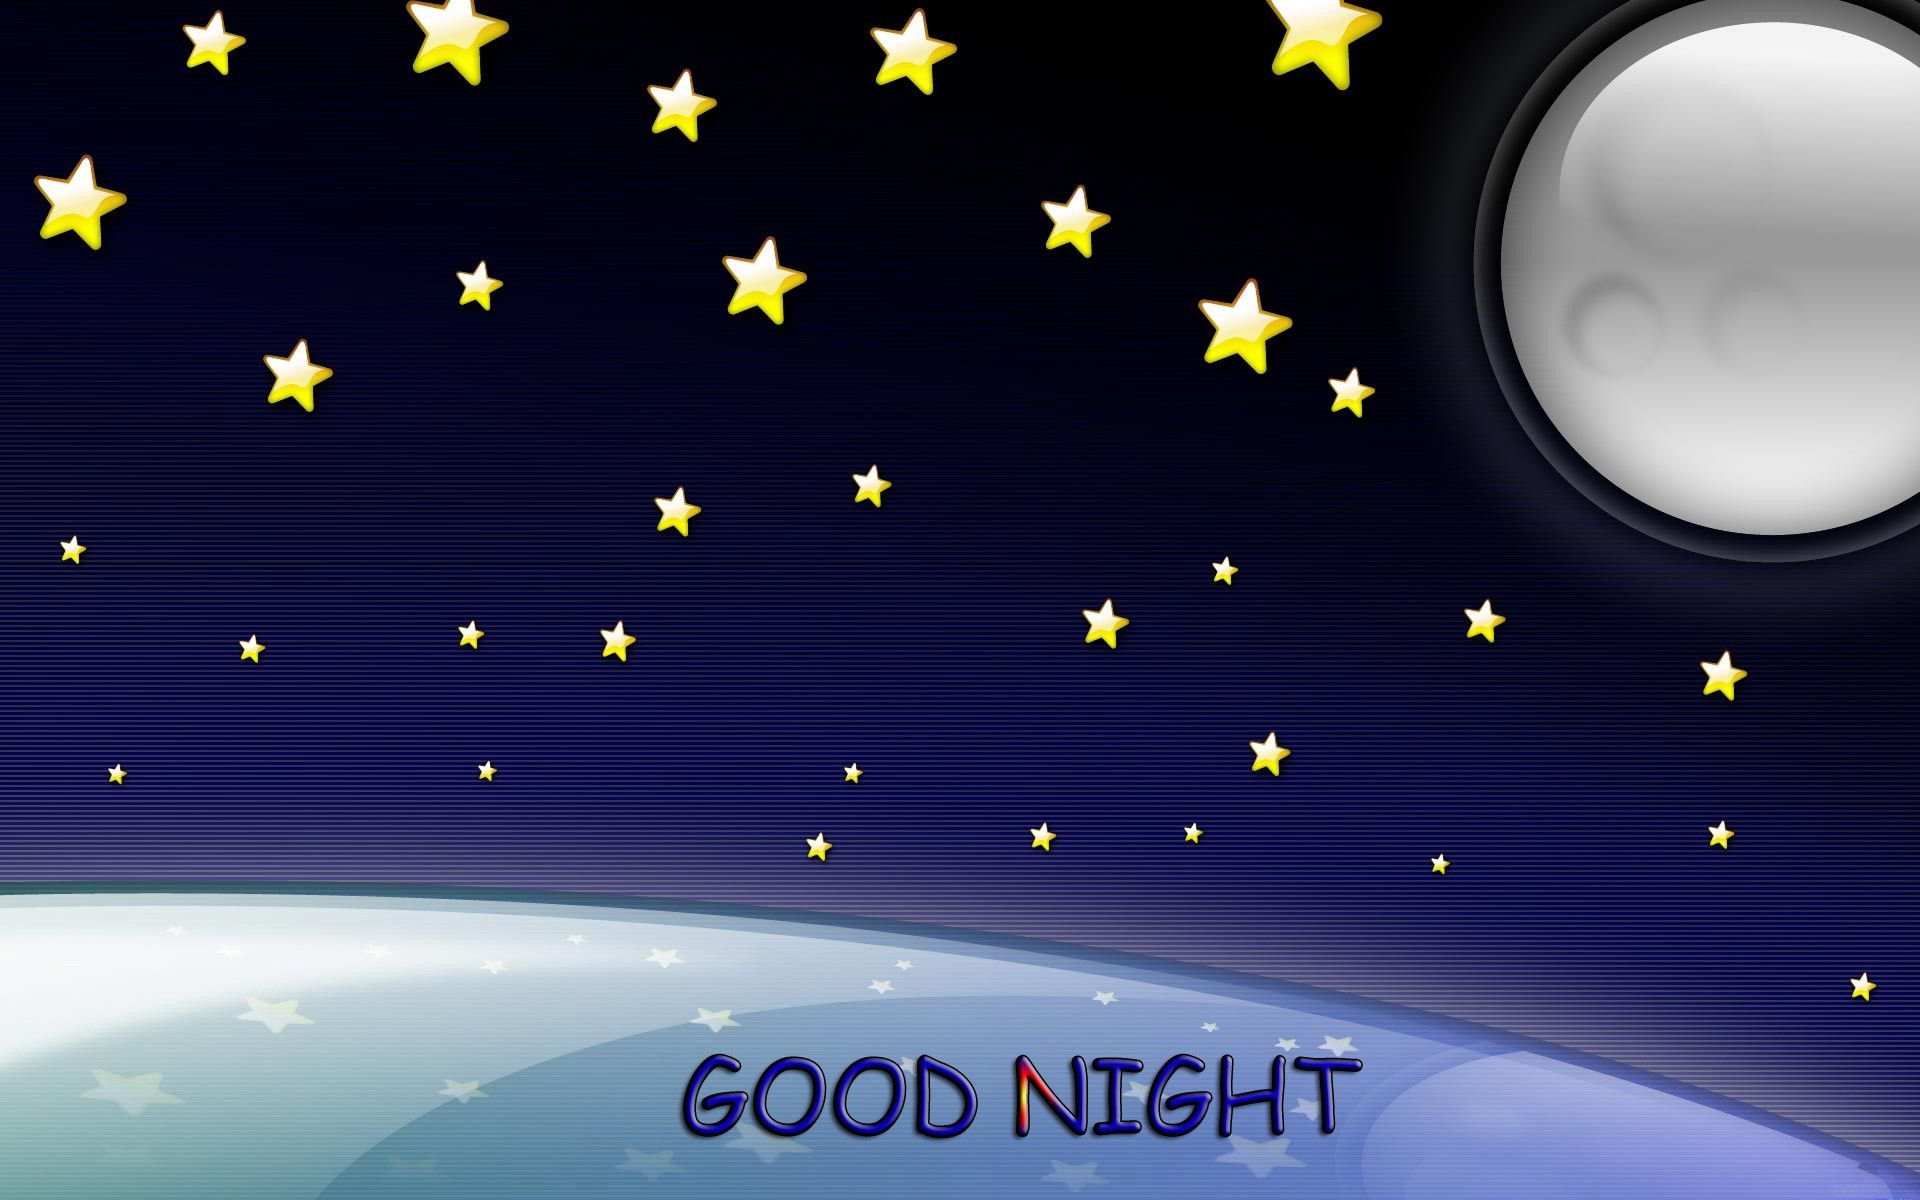 Good night moon star wallpaper wallpapers catalog pinterest good night moon star wallpaper voltagebd Gallery